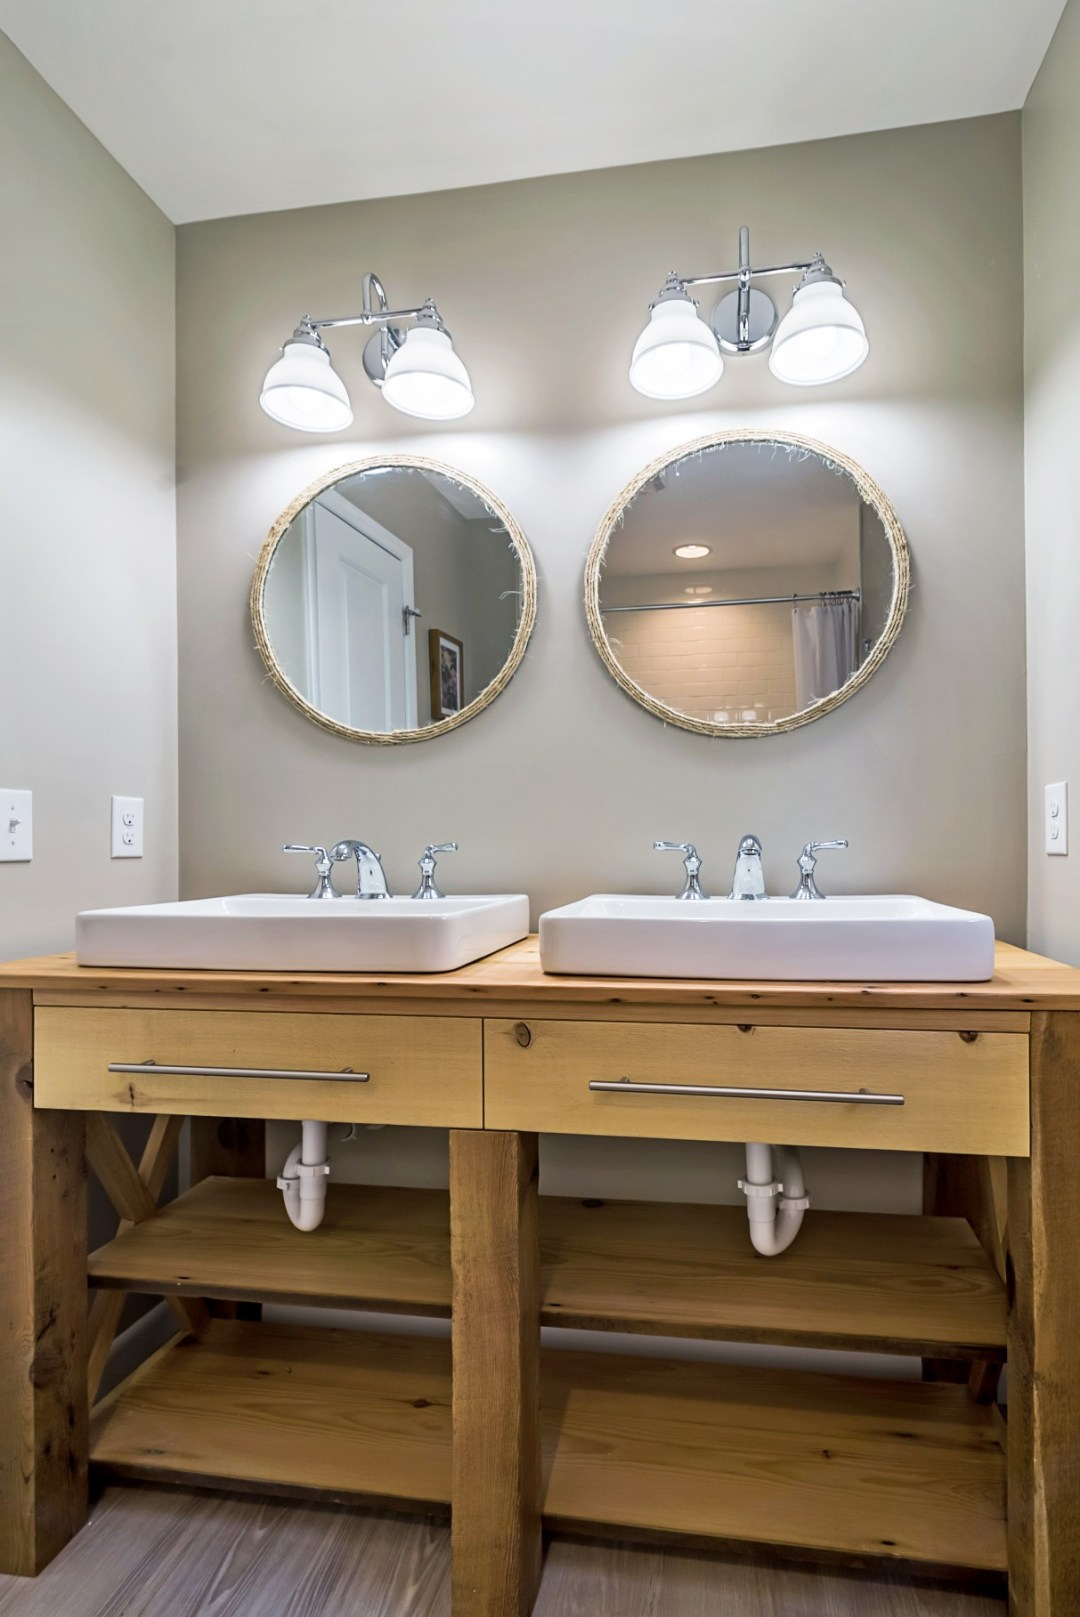 Bathroom Remodel in Wellington Parkway, Bethany Beach DE with Two Sinks, Chrome Faucets and Dual Double Lighting